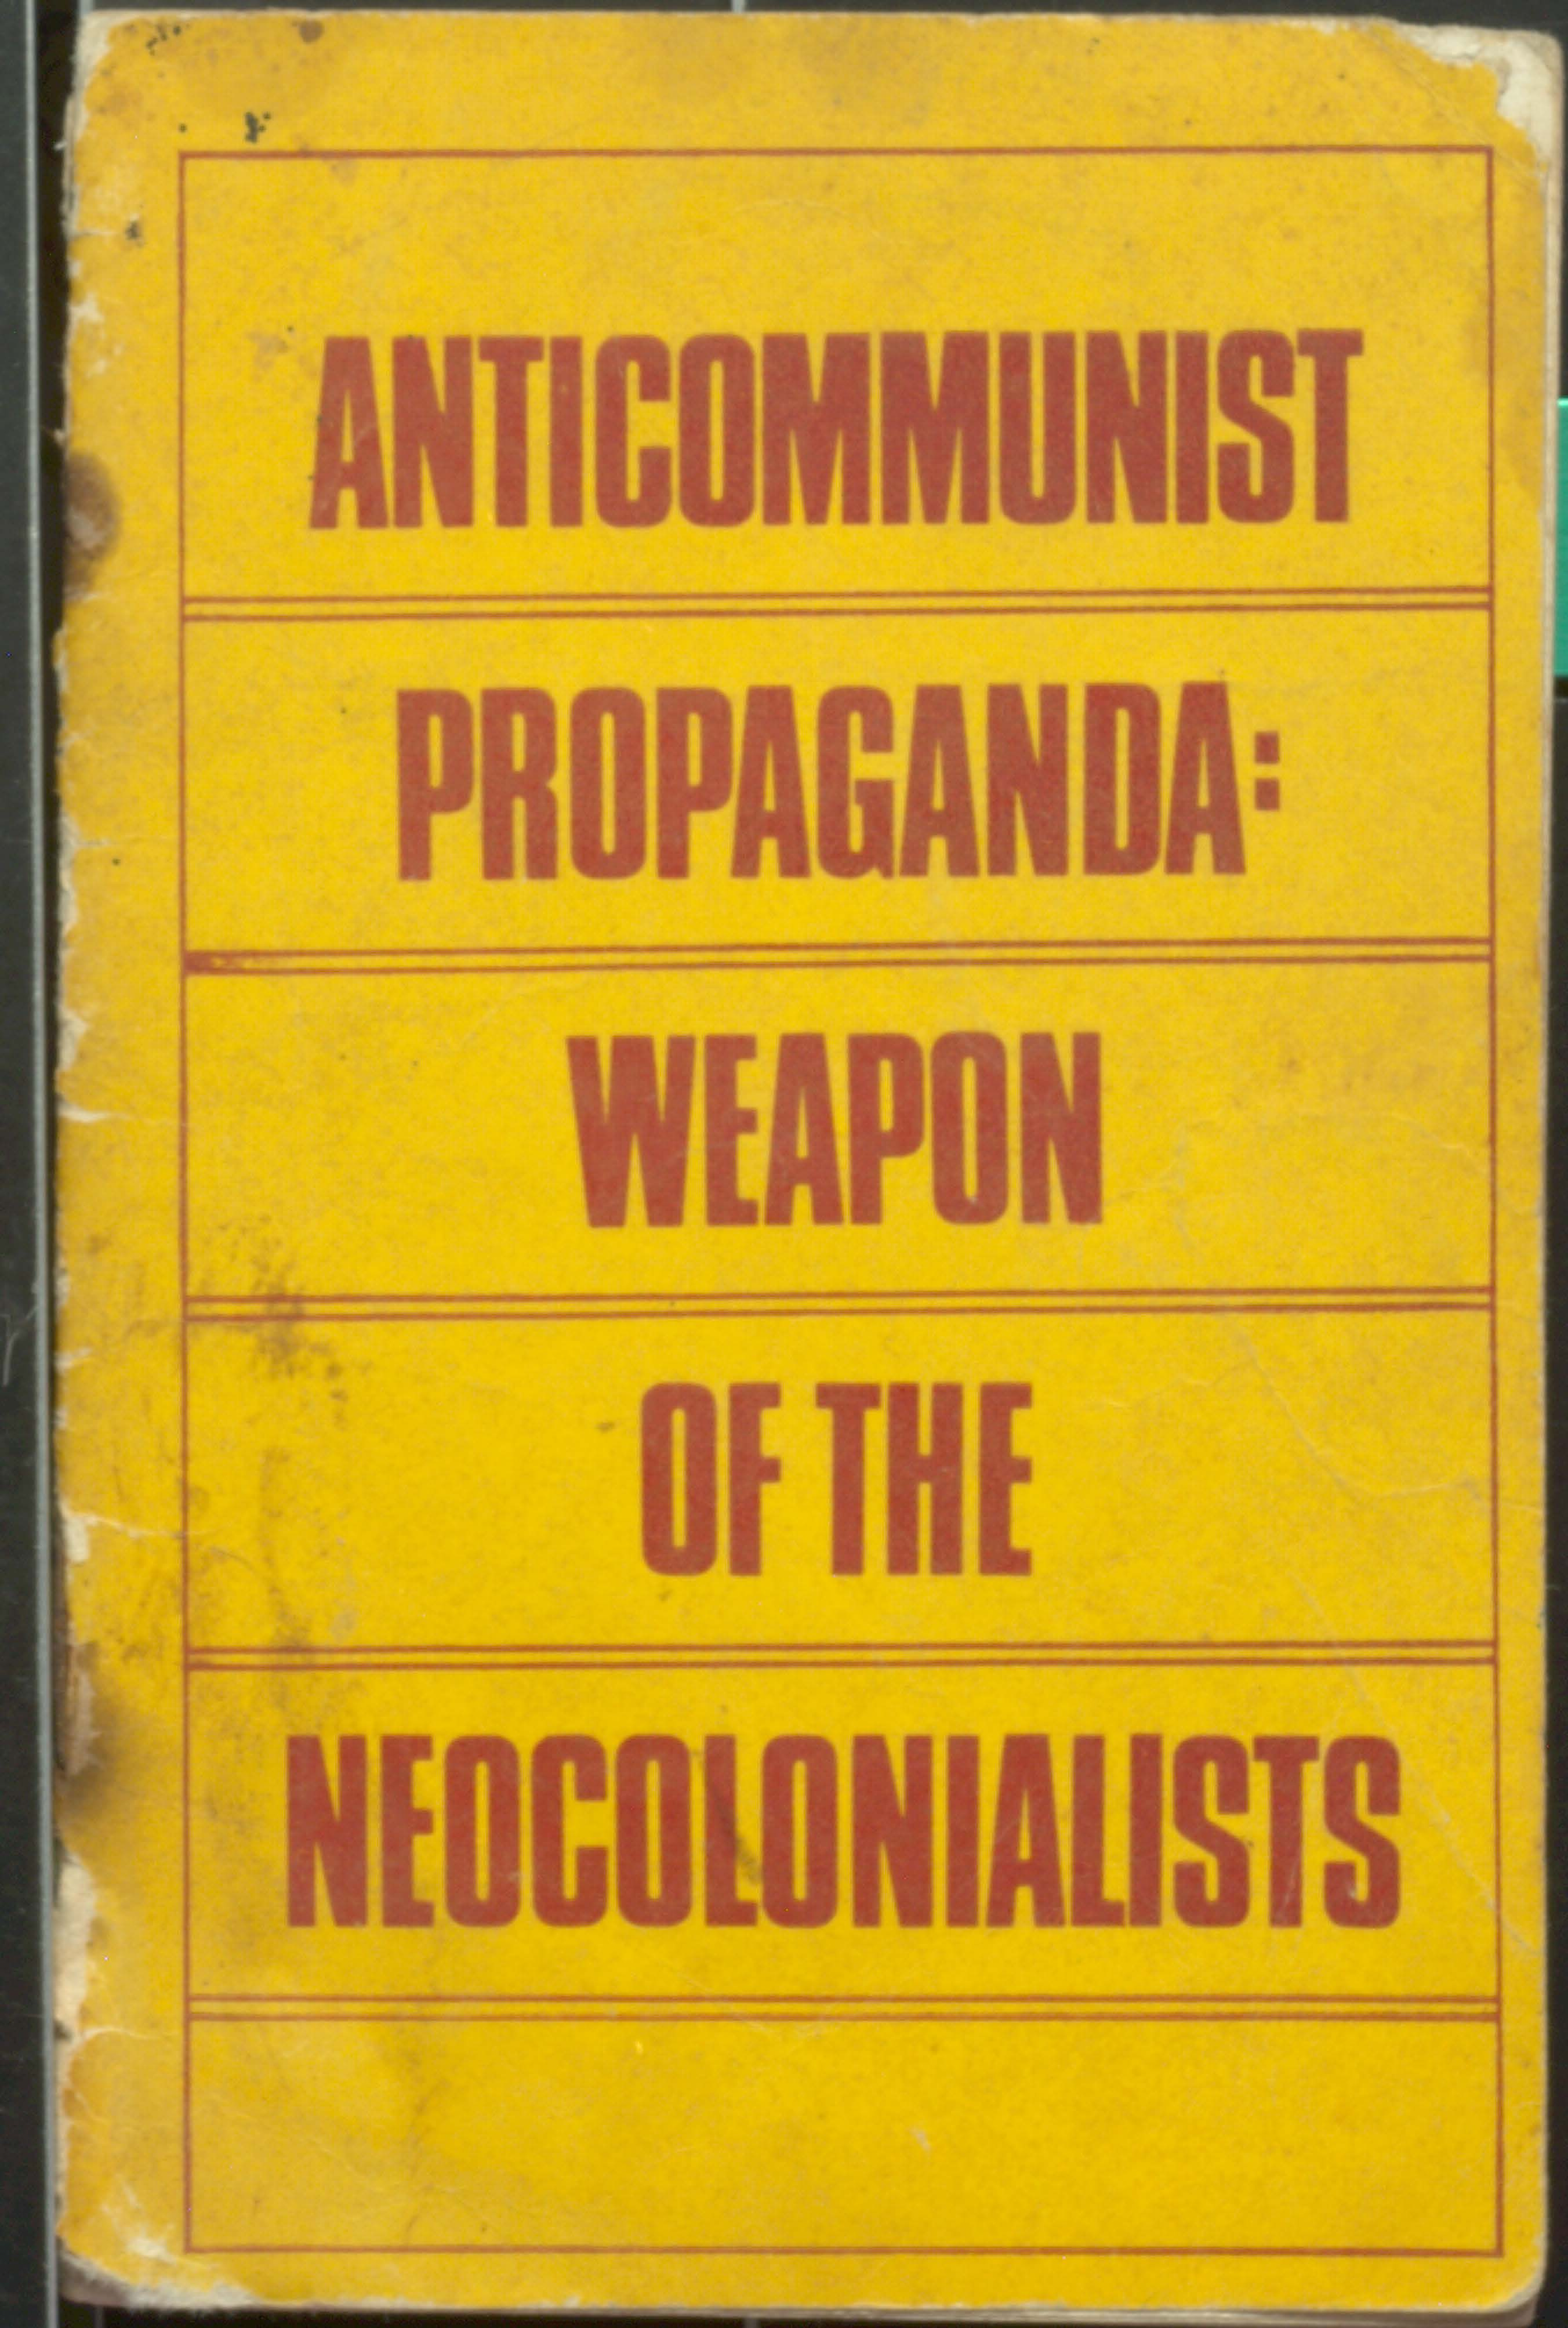 Anticommunist propaganda weapon of the Neocolonialists